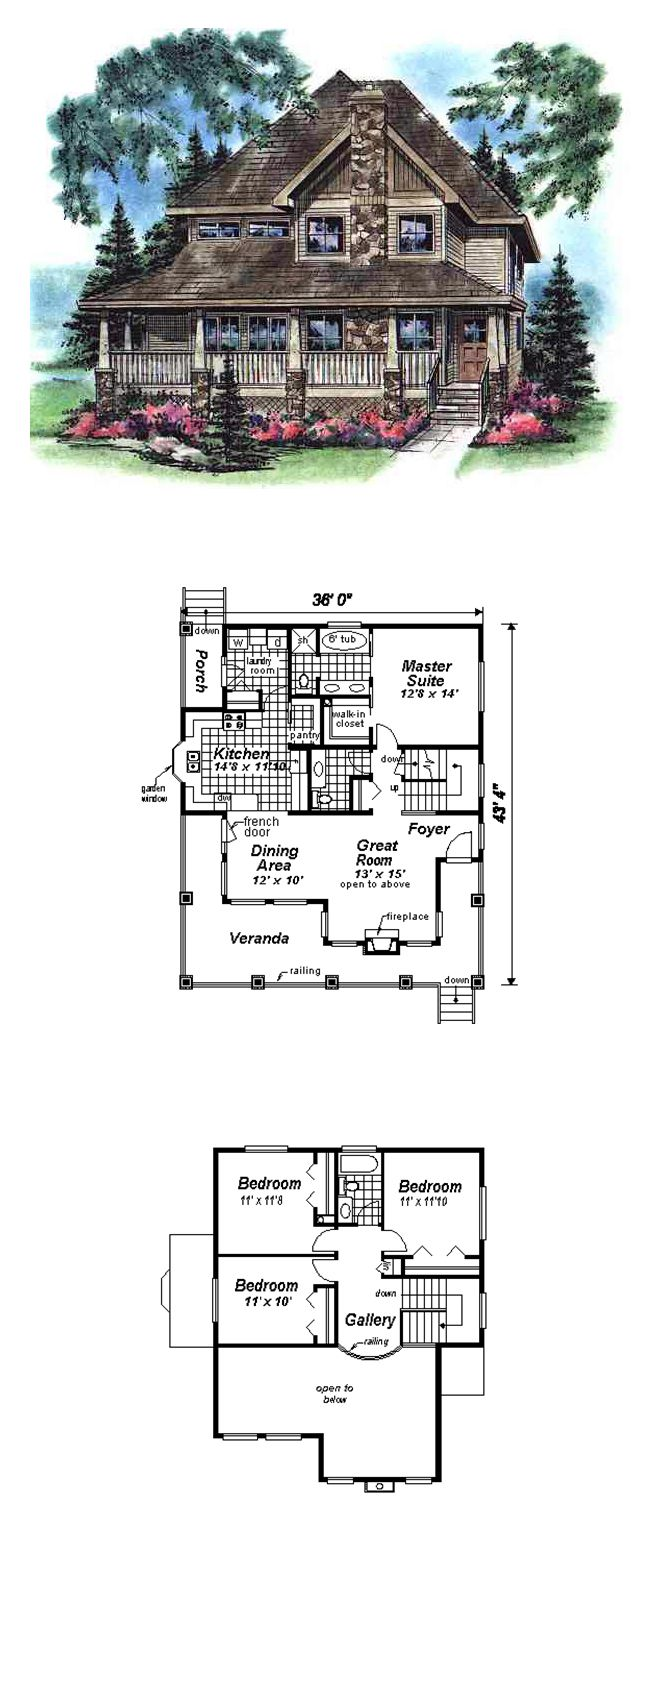 50 Best Images About Bungalow House Plans On Pinterest